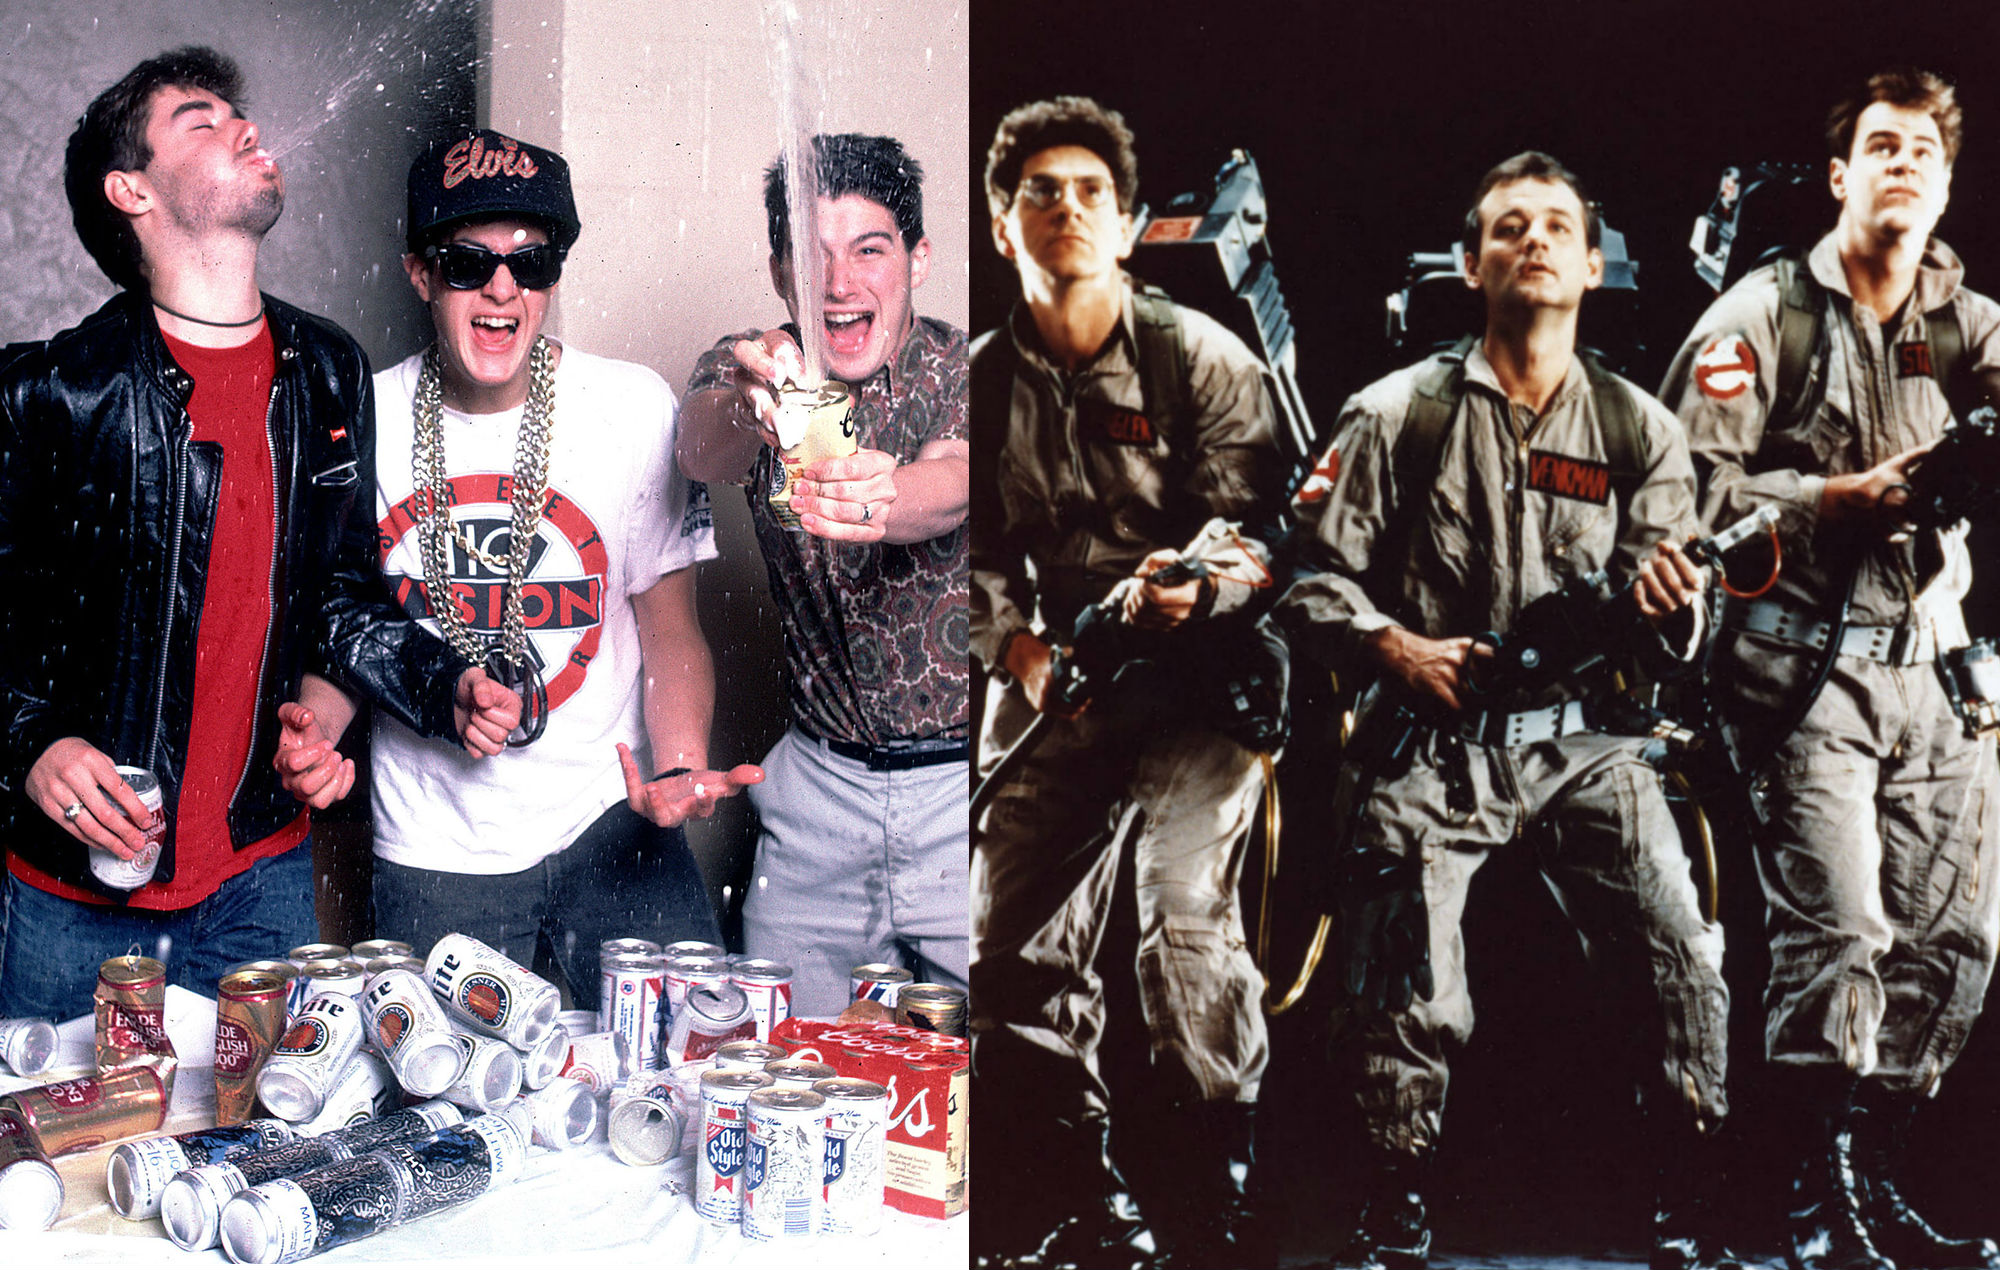 Beastie Boys and Ghostbusters